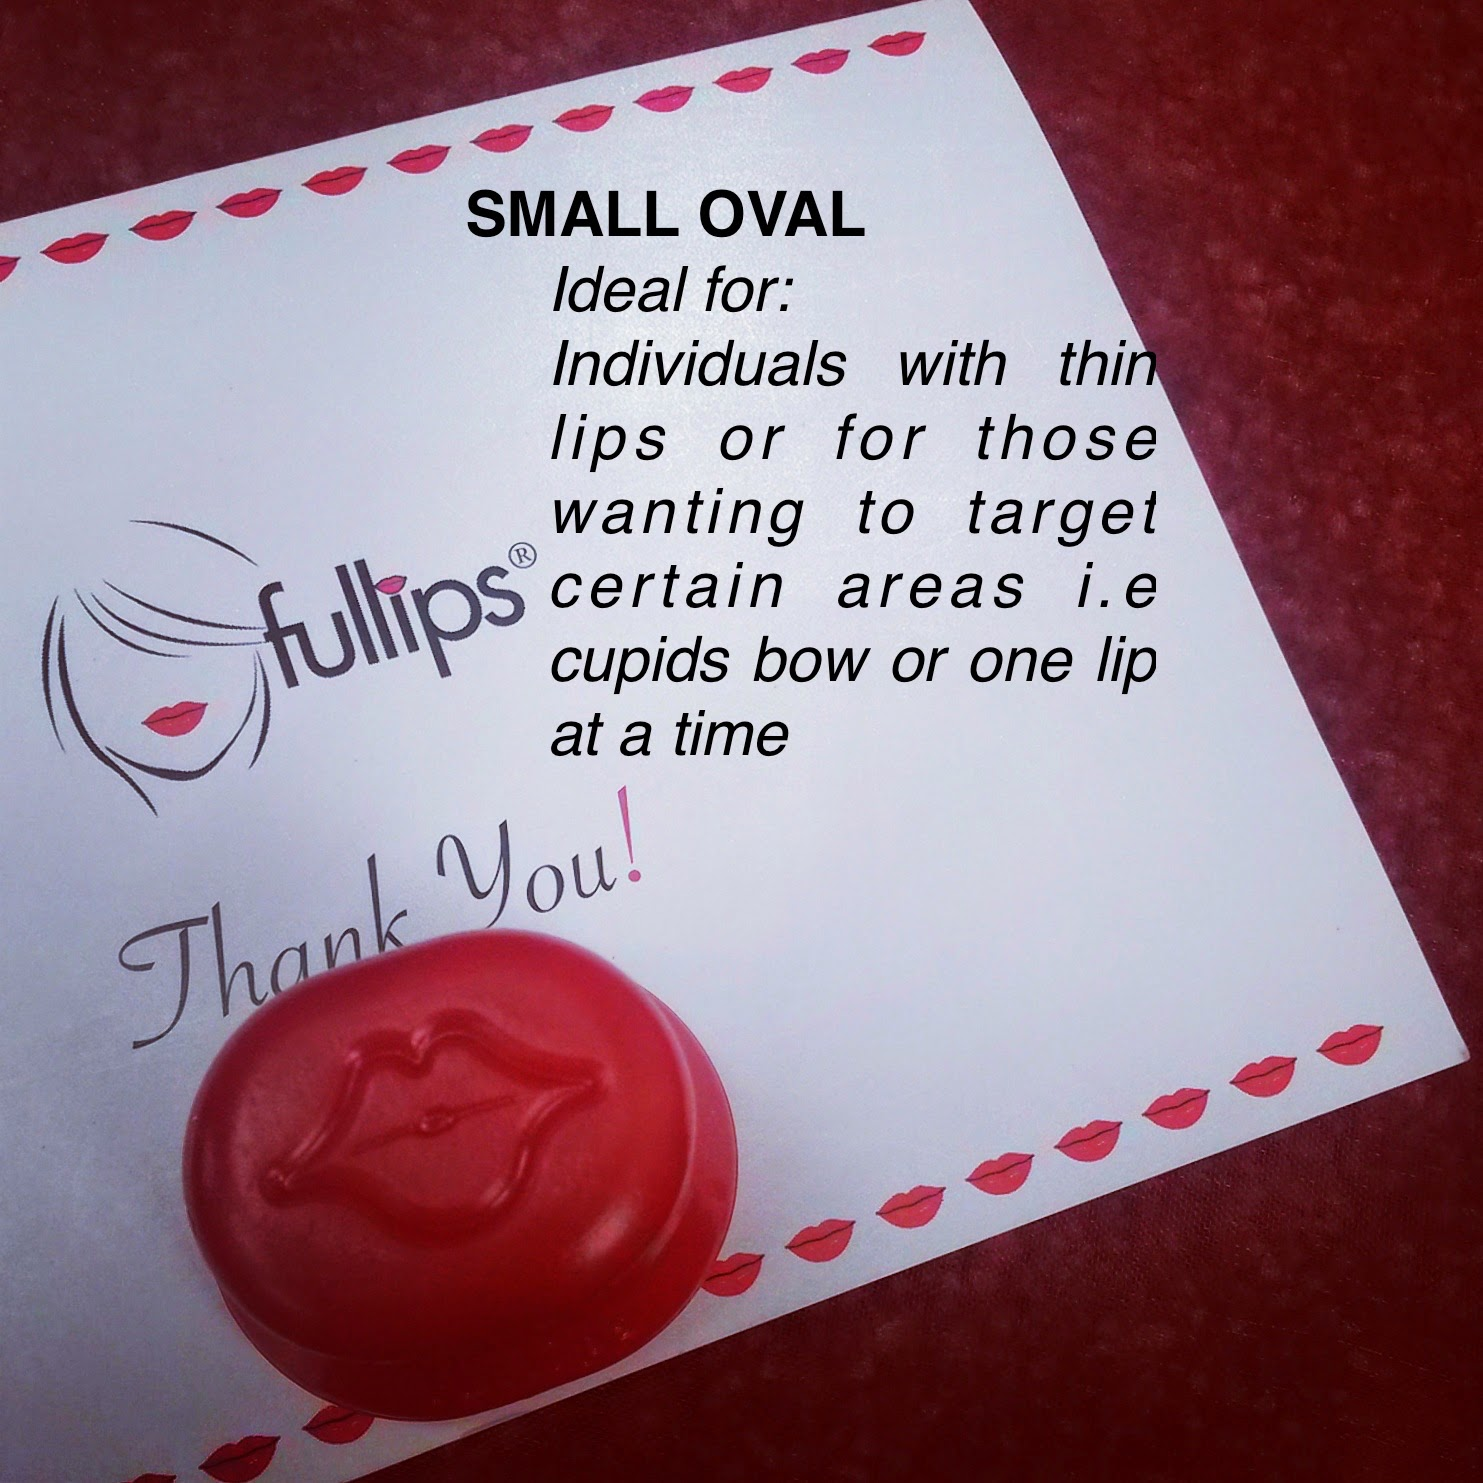 small oval fullips review UK